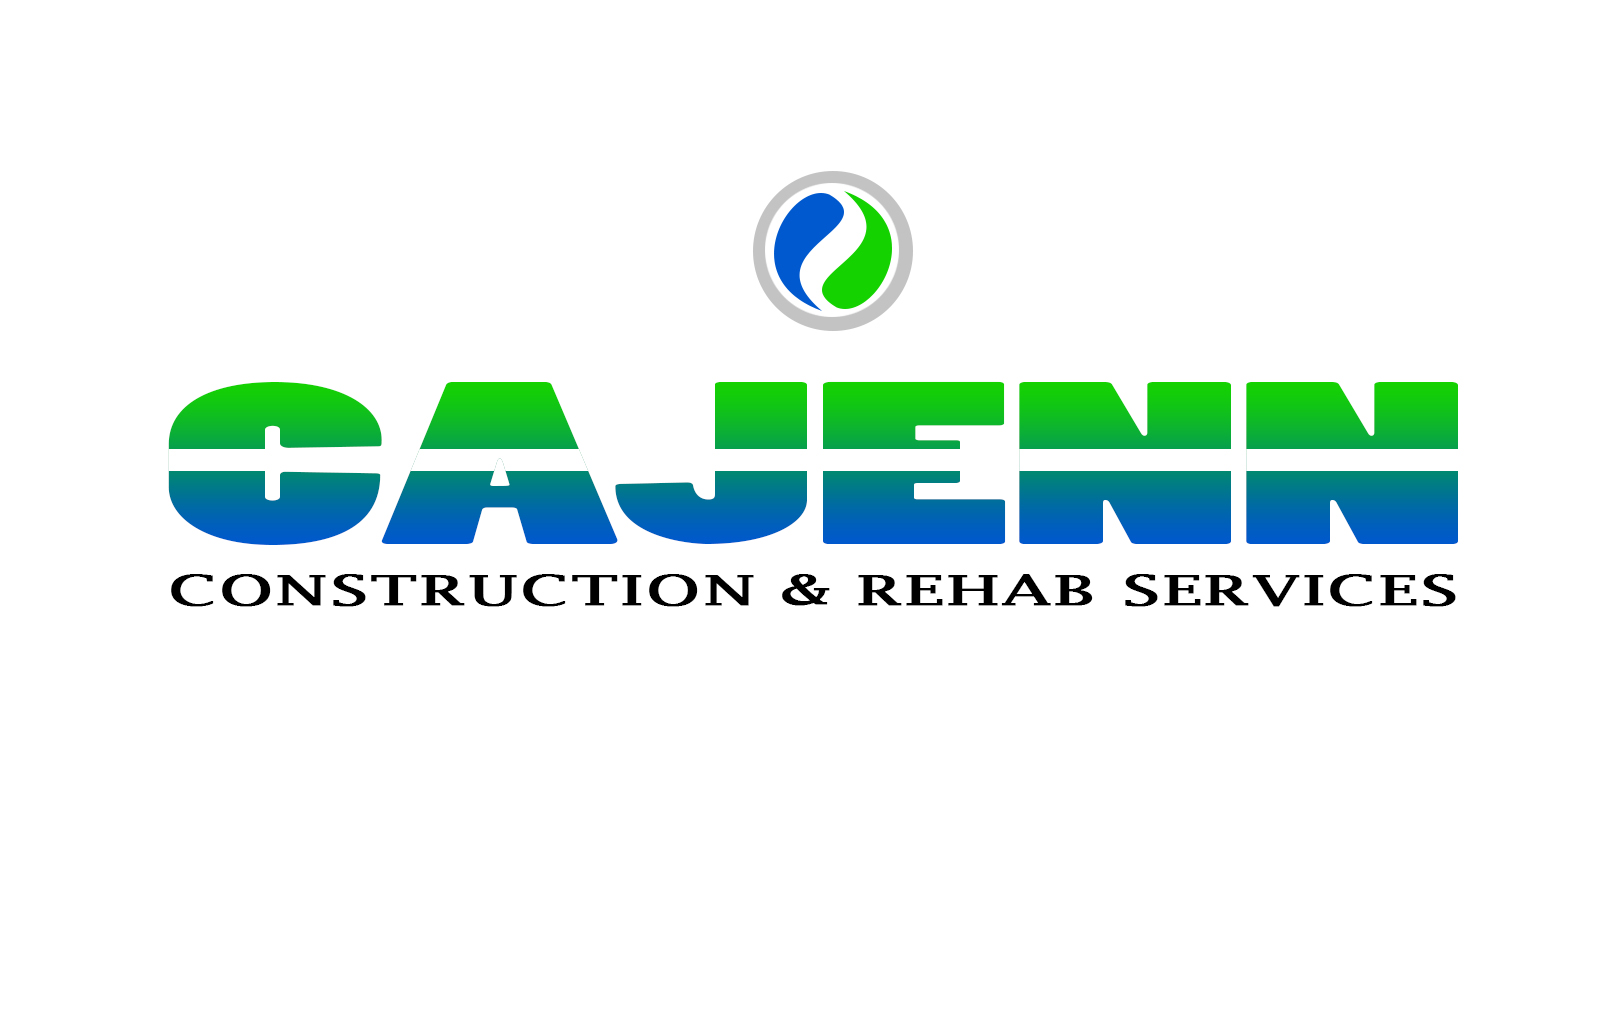 Logo Design by drunkman - Entry No. 284 in the Logo Design Contest New Logo Design for CaJenn Construction & Rehab Services.